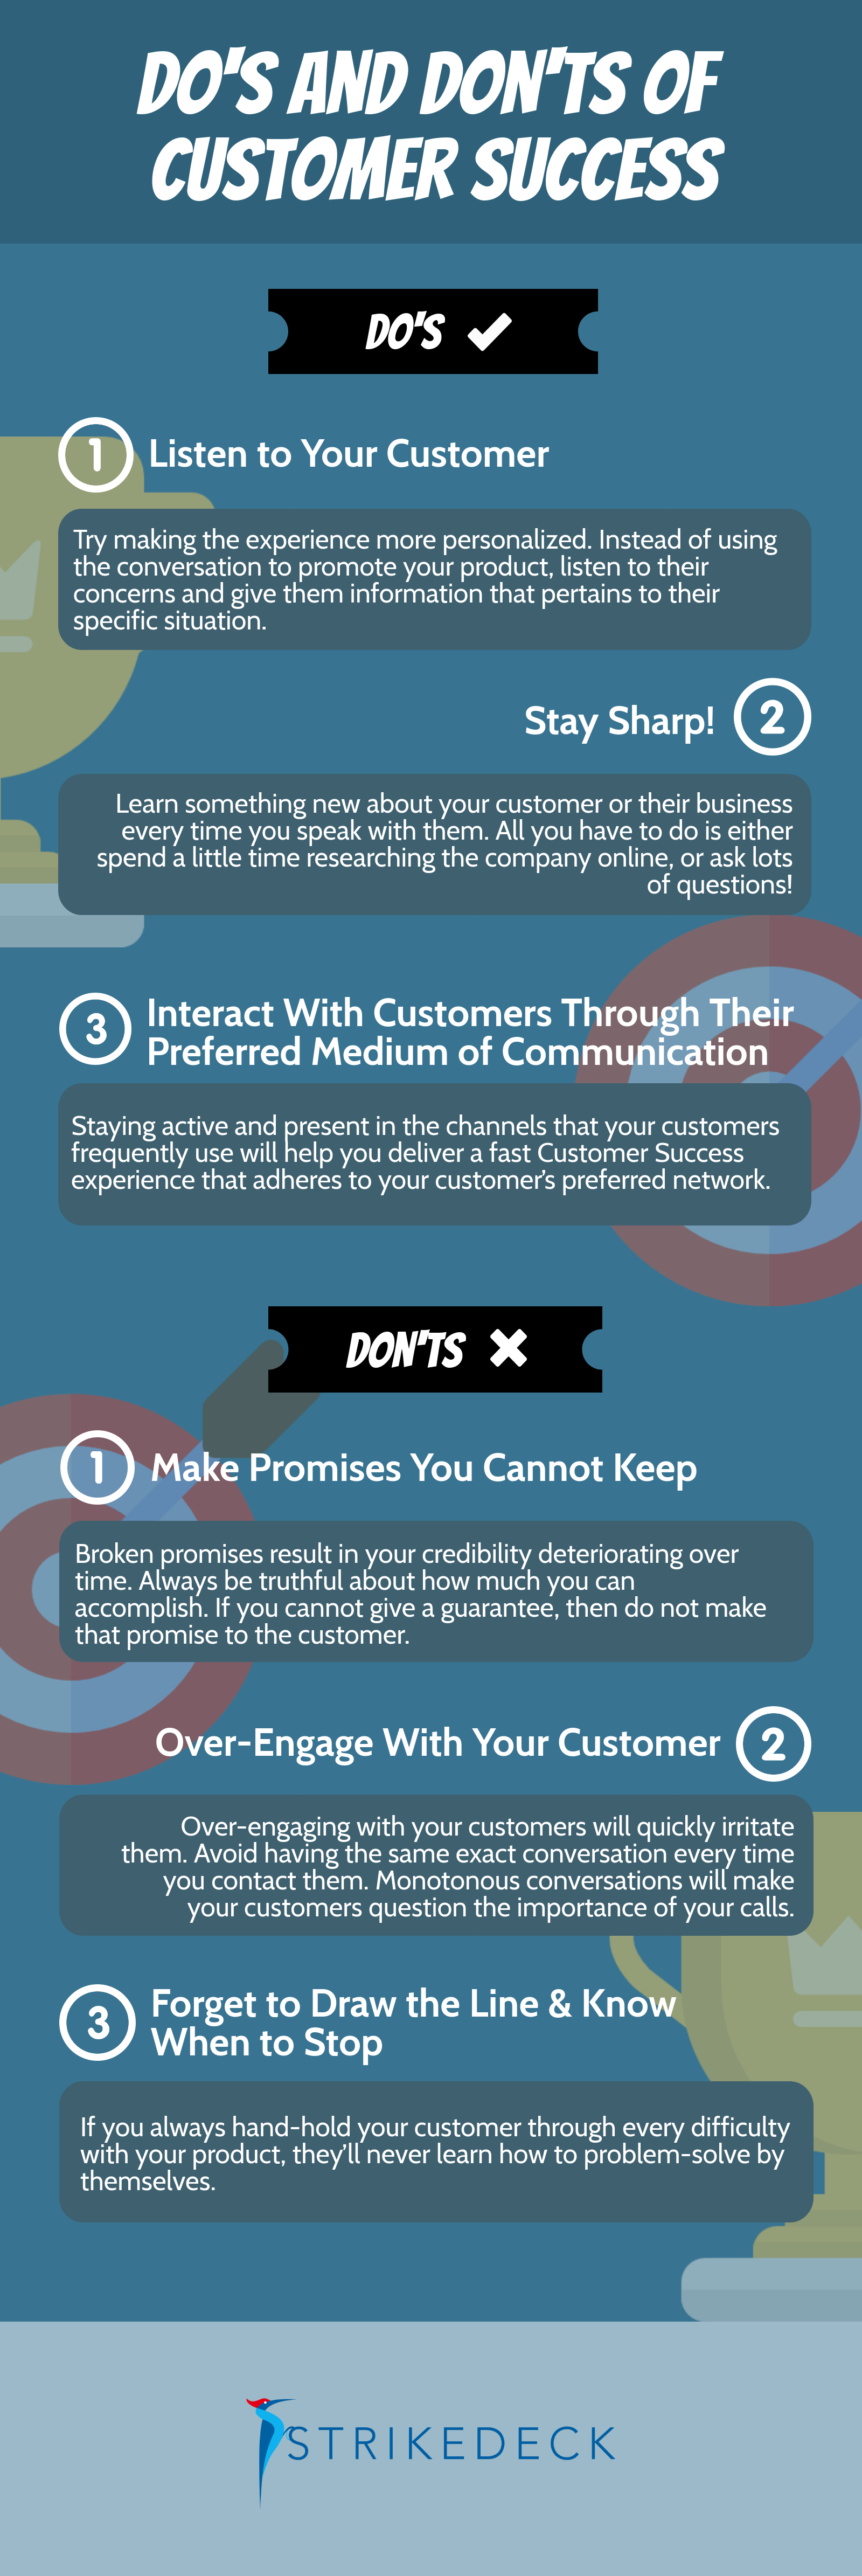 Dos-and-Donts-of-Customer-Success-Infographic